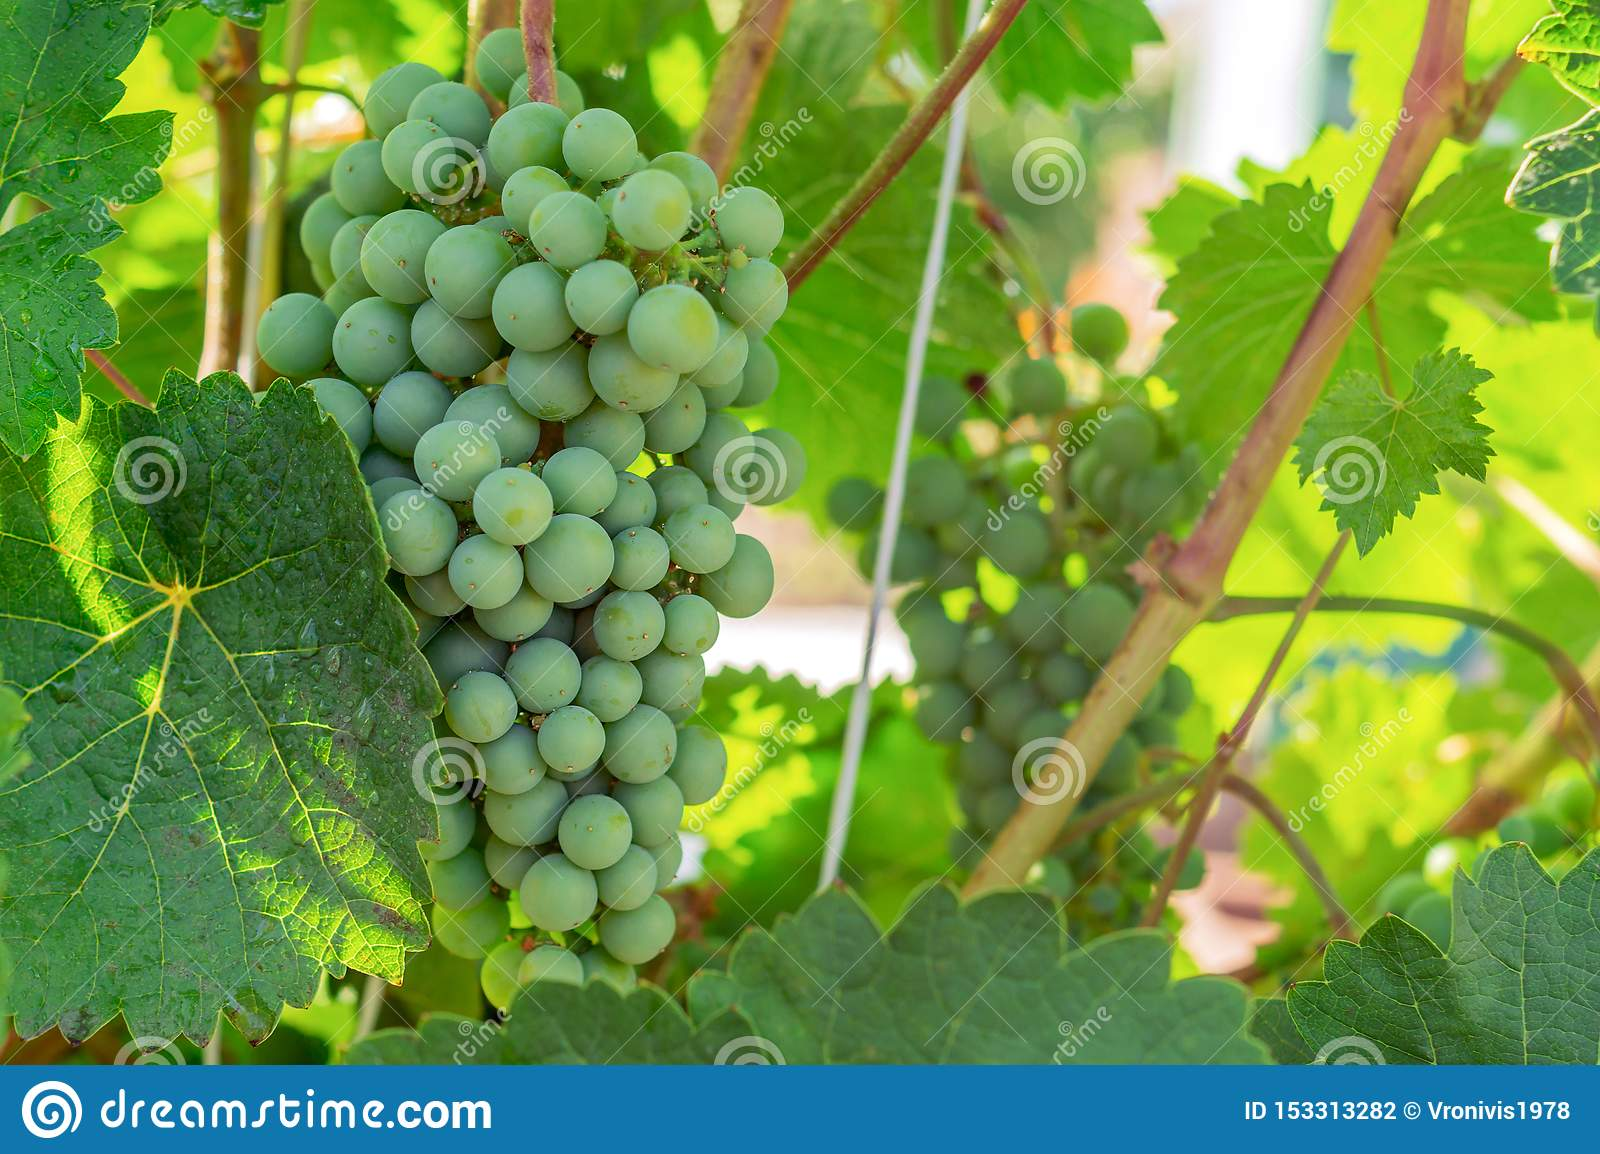 Ripening white grapes with drops of water after rain in garden. Green grapes growing on the grape vines. Agricultural background